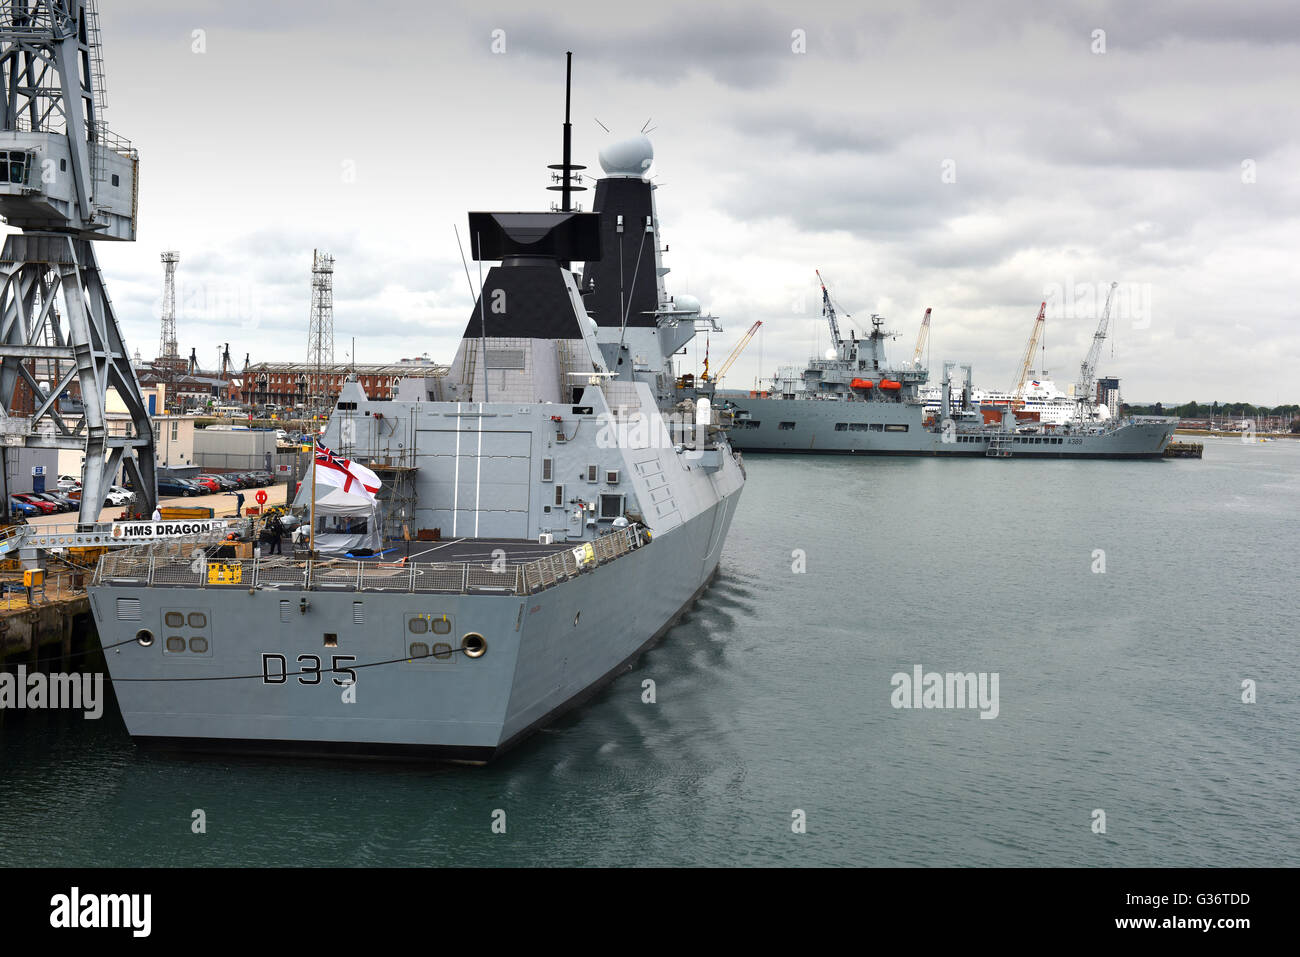 HMS Dragon D35 a Royal Navy Type 45 air defence destroyer at Portsmouth Naval Base harbour in Hampshire England - Stock Image